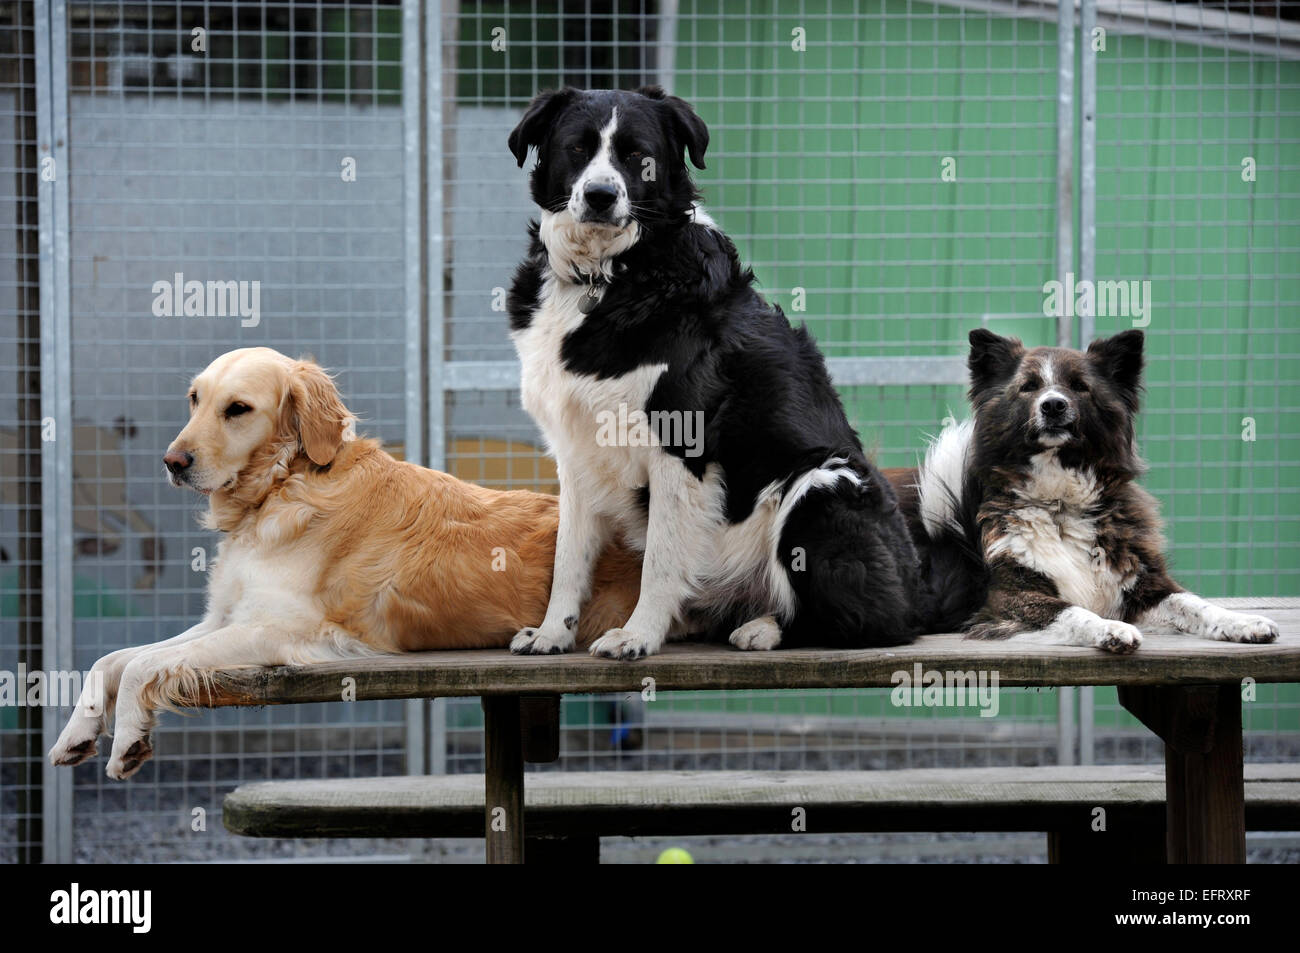 Dogs for adoption at the Many Tears Animal Rescue centre near Llanelli, S. Wales UK - Stock Image